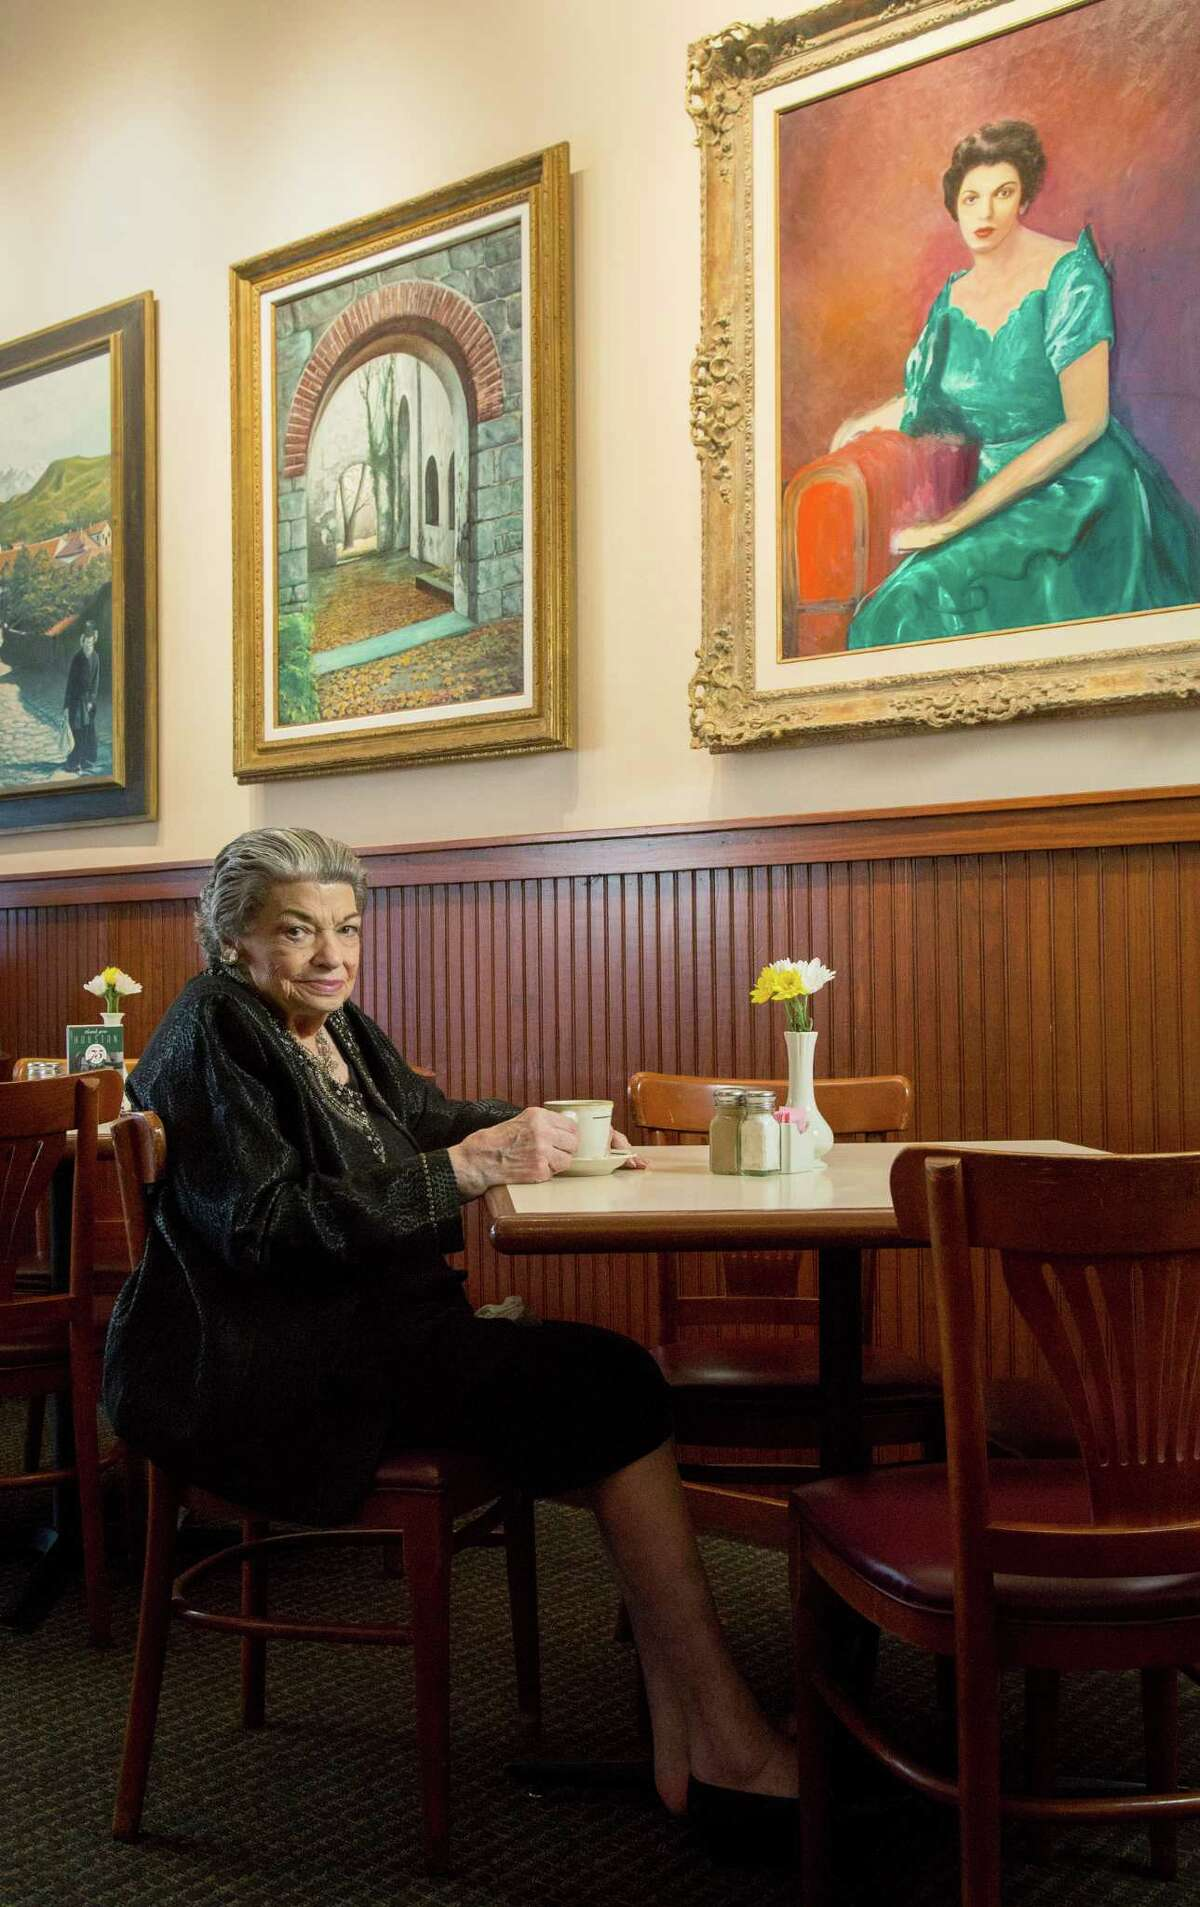 Pat Mickelis at Cleburne Cafeteria. Artwork on the walls of her restaurant were painted by her late husband, Nick.